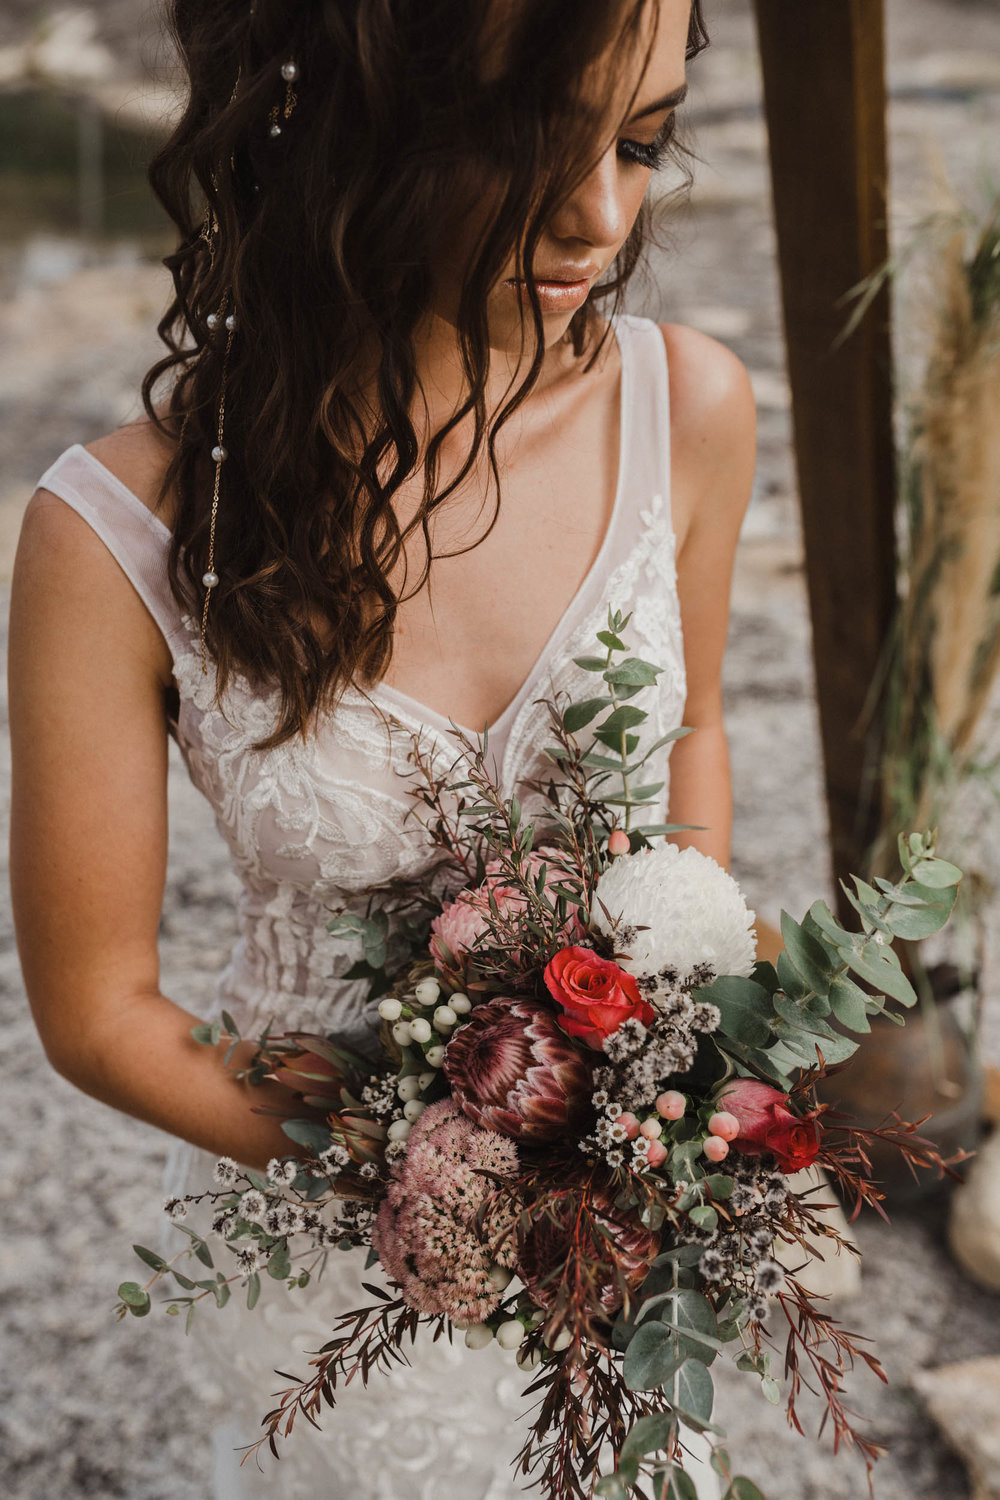 The Raw Photographer - Cairns Wedding Photographer - Brides Styled Shoot - Dress Jonovia Bridal - Hair Makeup Ideas-5.jpg